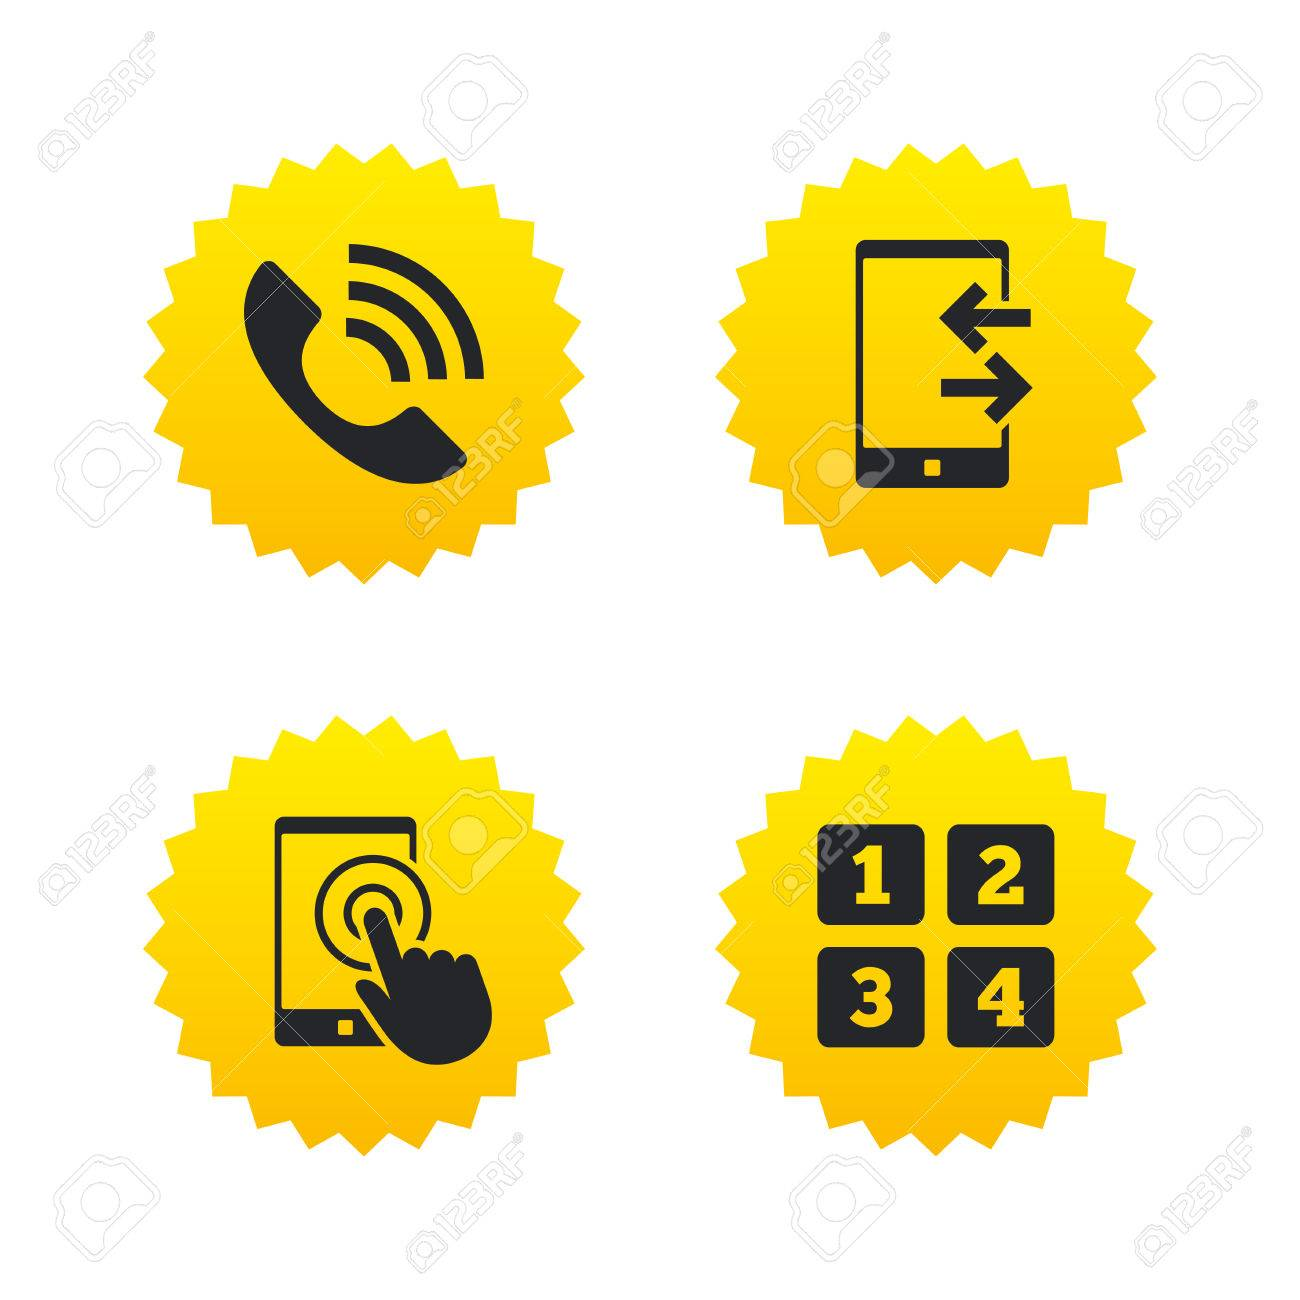 Phone icons touch screen smartphone sign call center support phone icons touch screen smartphone sign call center support symbol cellphone keyboard symbol biocorpaavc Images